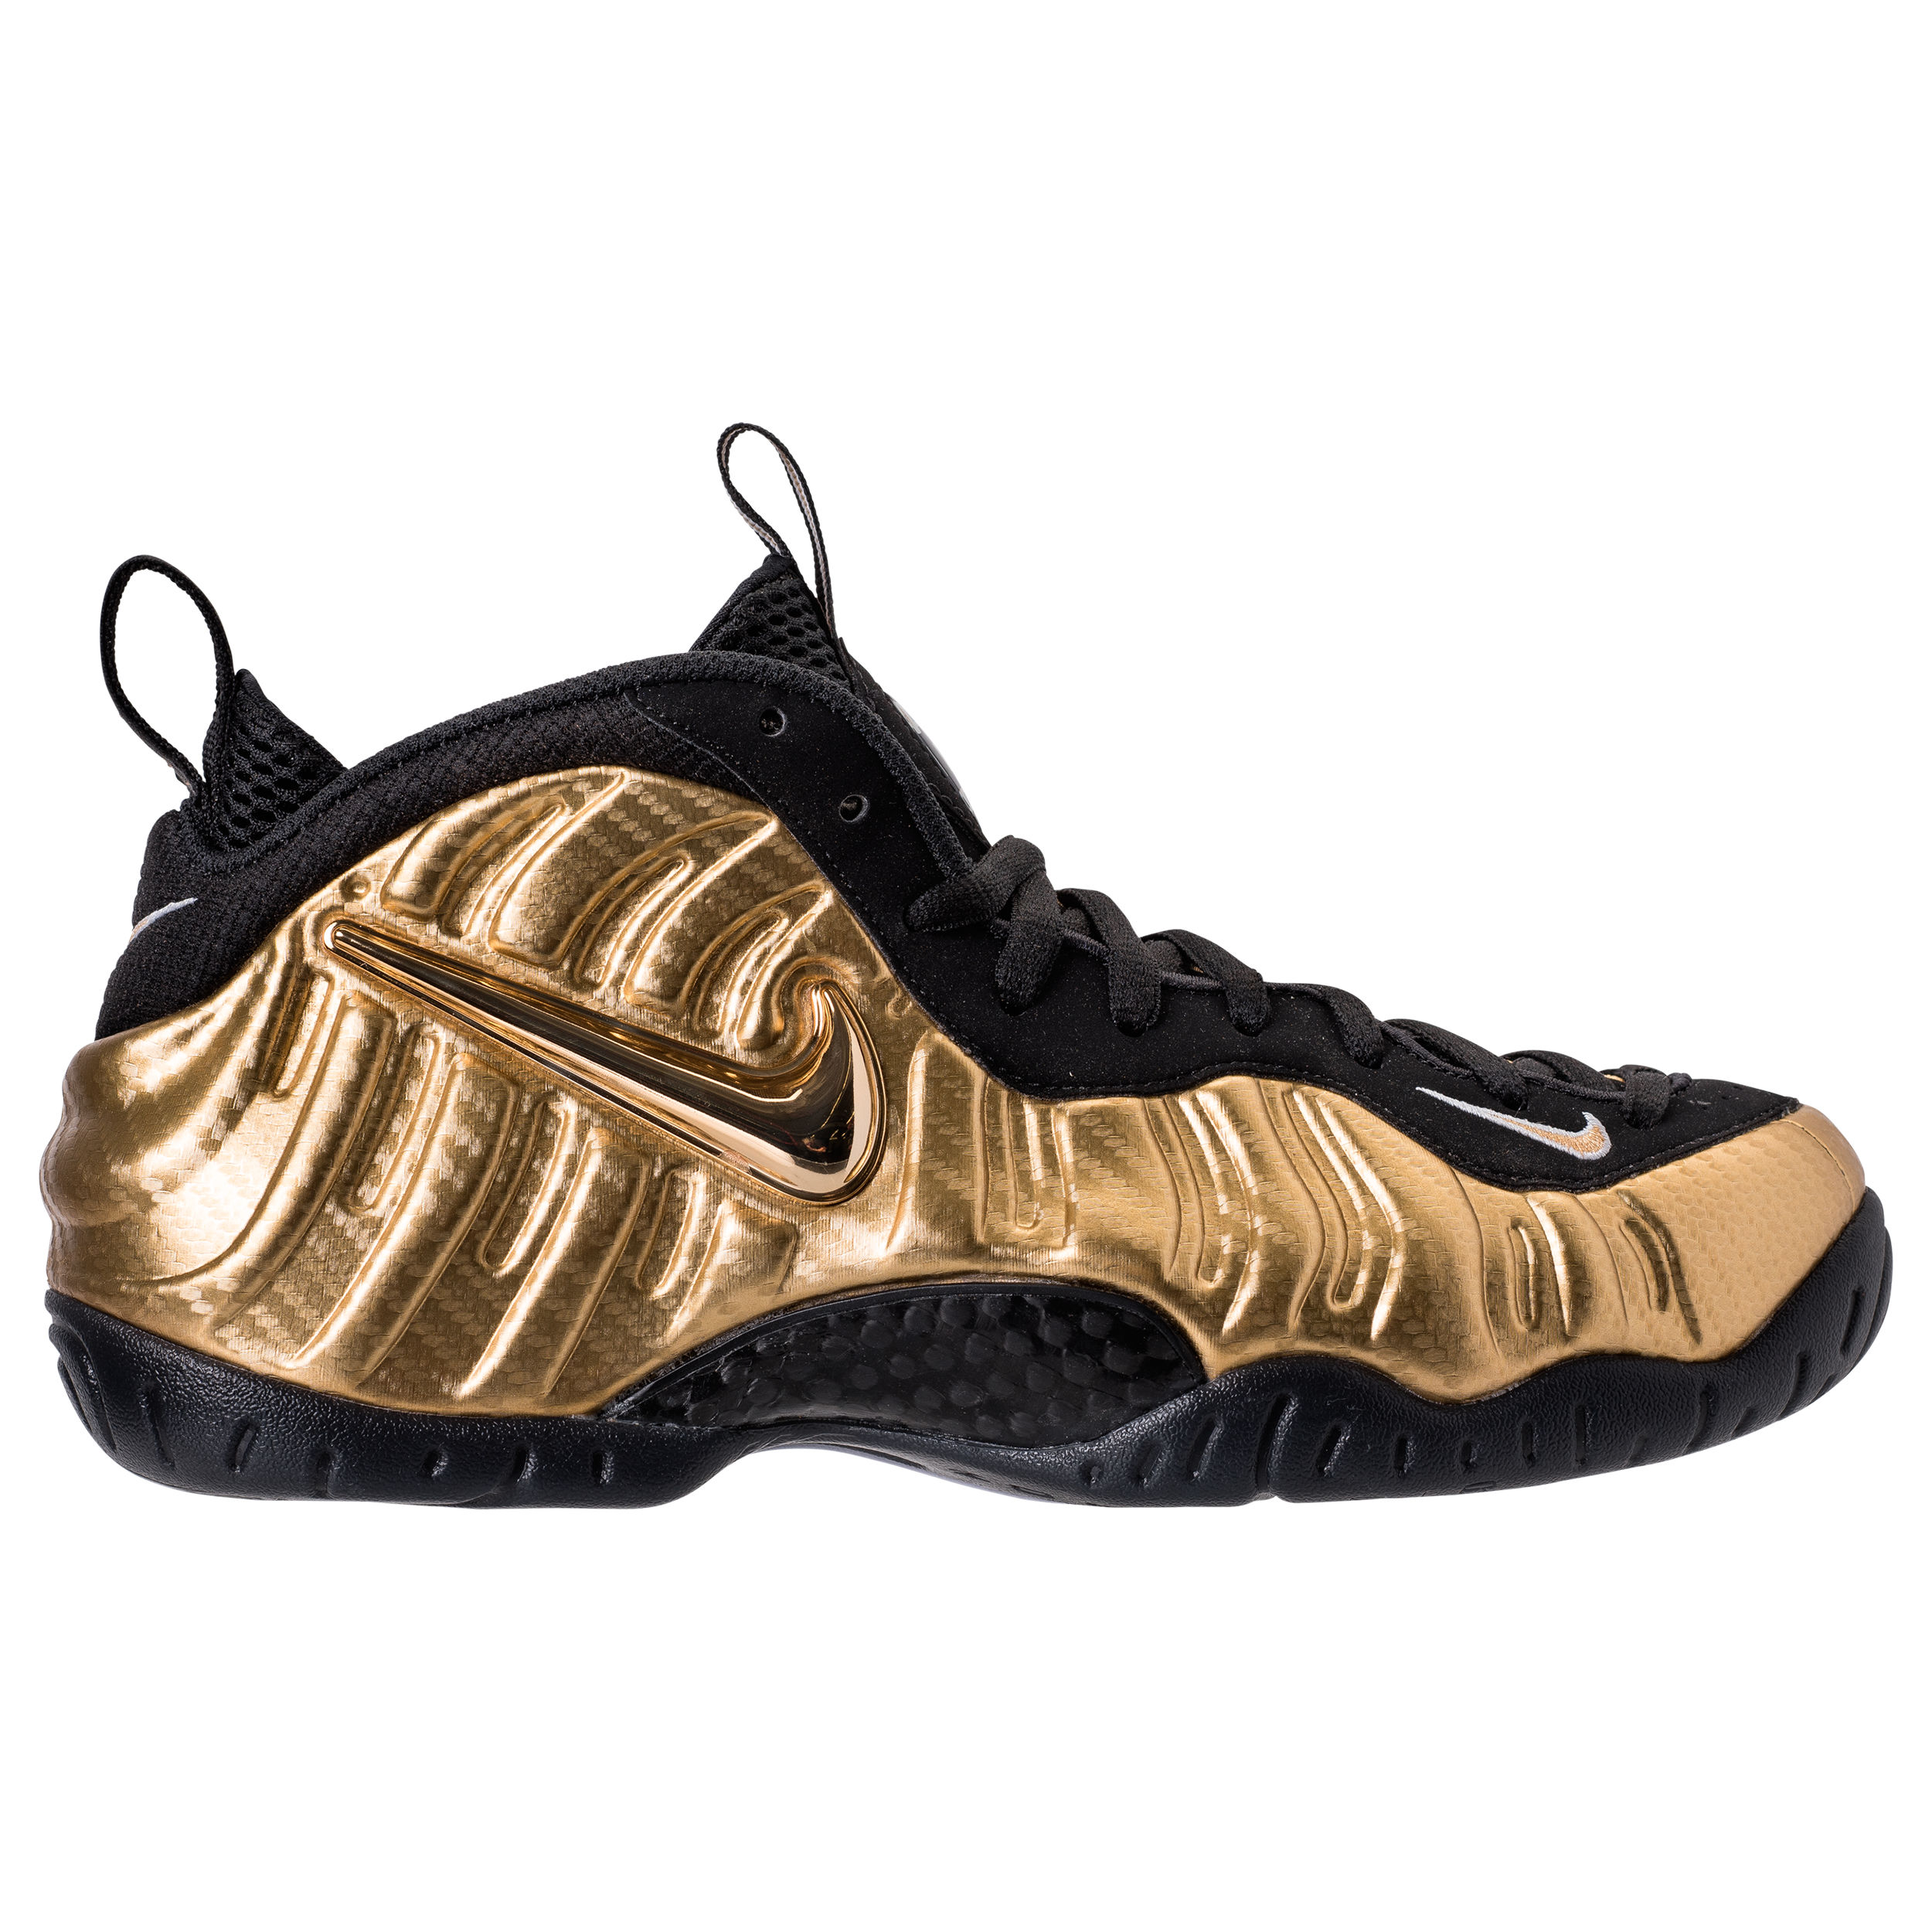 wholesale dealer 3ab65 6e8e9 nike air foamposite pro metallic gold 2 · Kicks On Court   Nike   Retro  Lifestyle ...